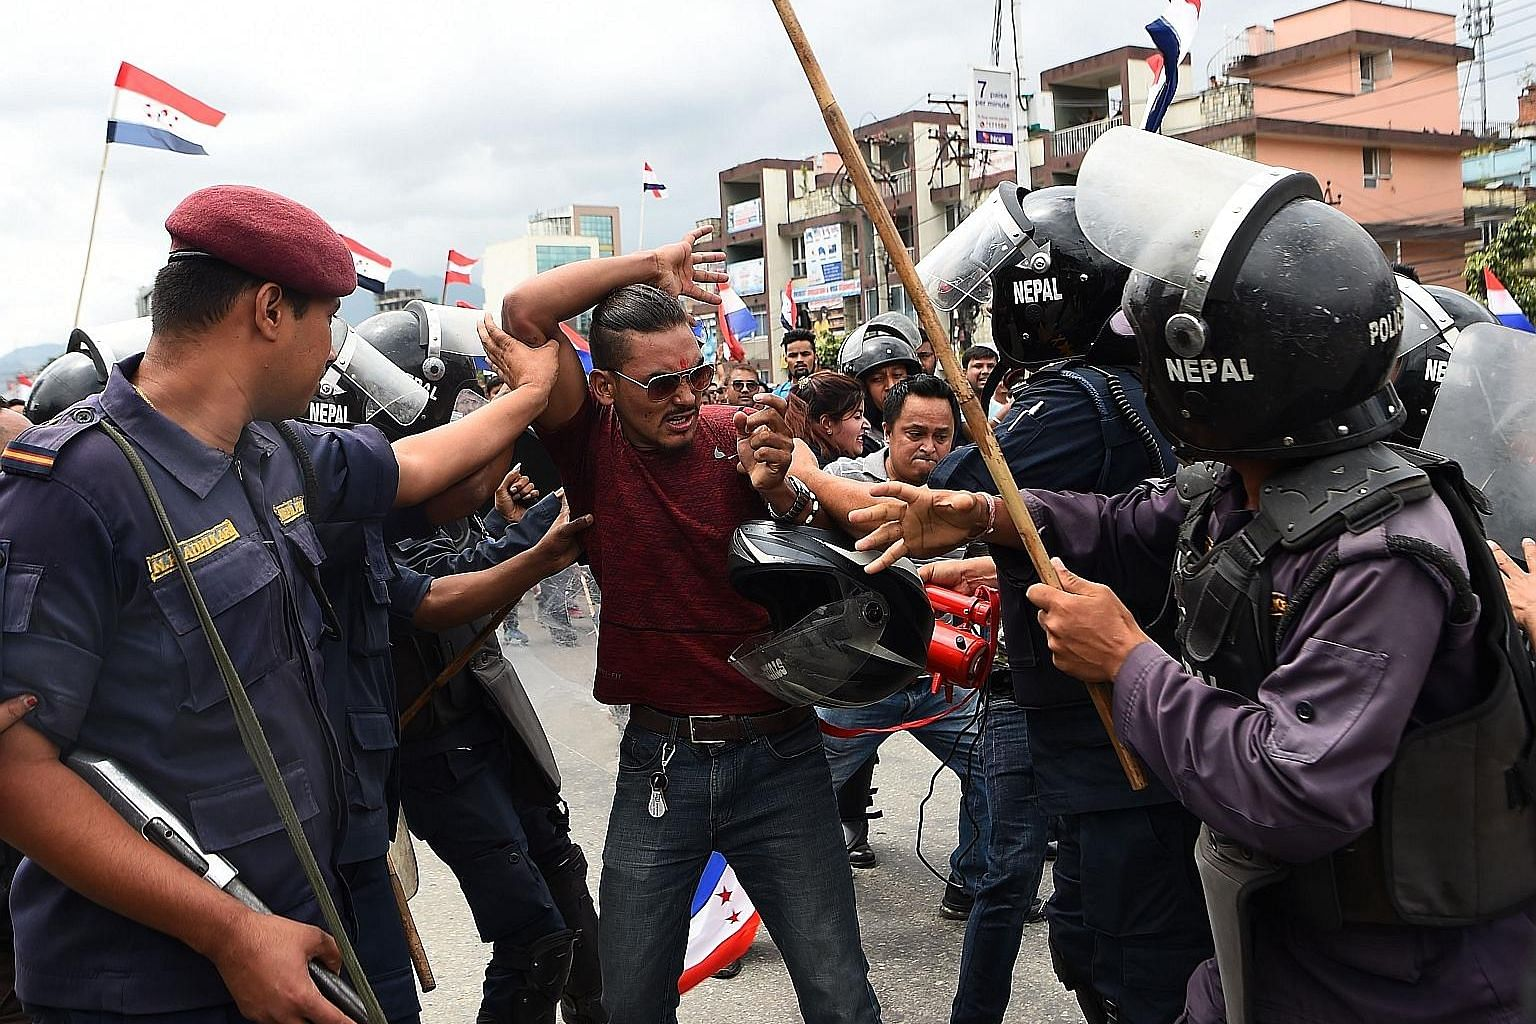 Activists of the Nepal Tarun Dal, the youth wing of the opposition Nepali Congress Party, scuffling with police at an anti-government protest in Kathmandu last Saturday. Dozens were hurt as they supported Dr K. C. Govinda, who has been on a hunger st